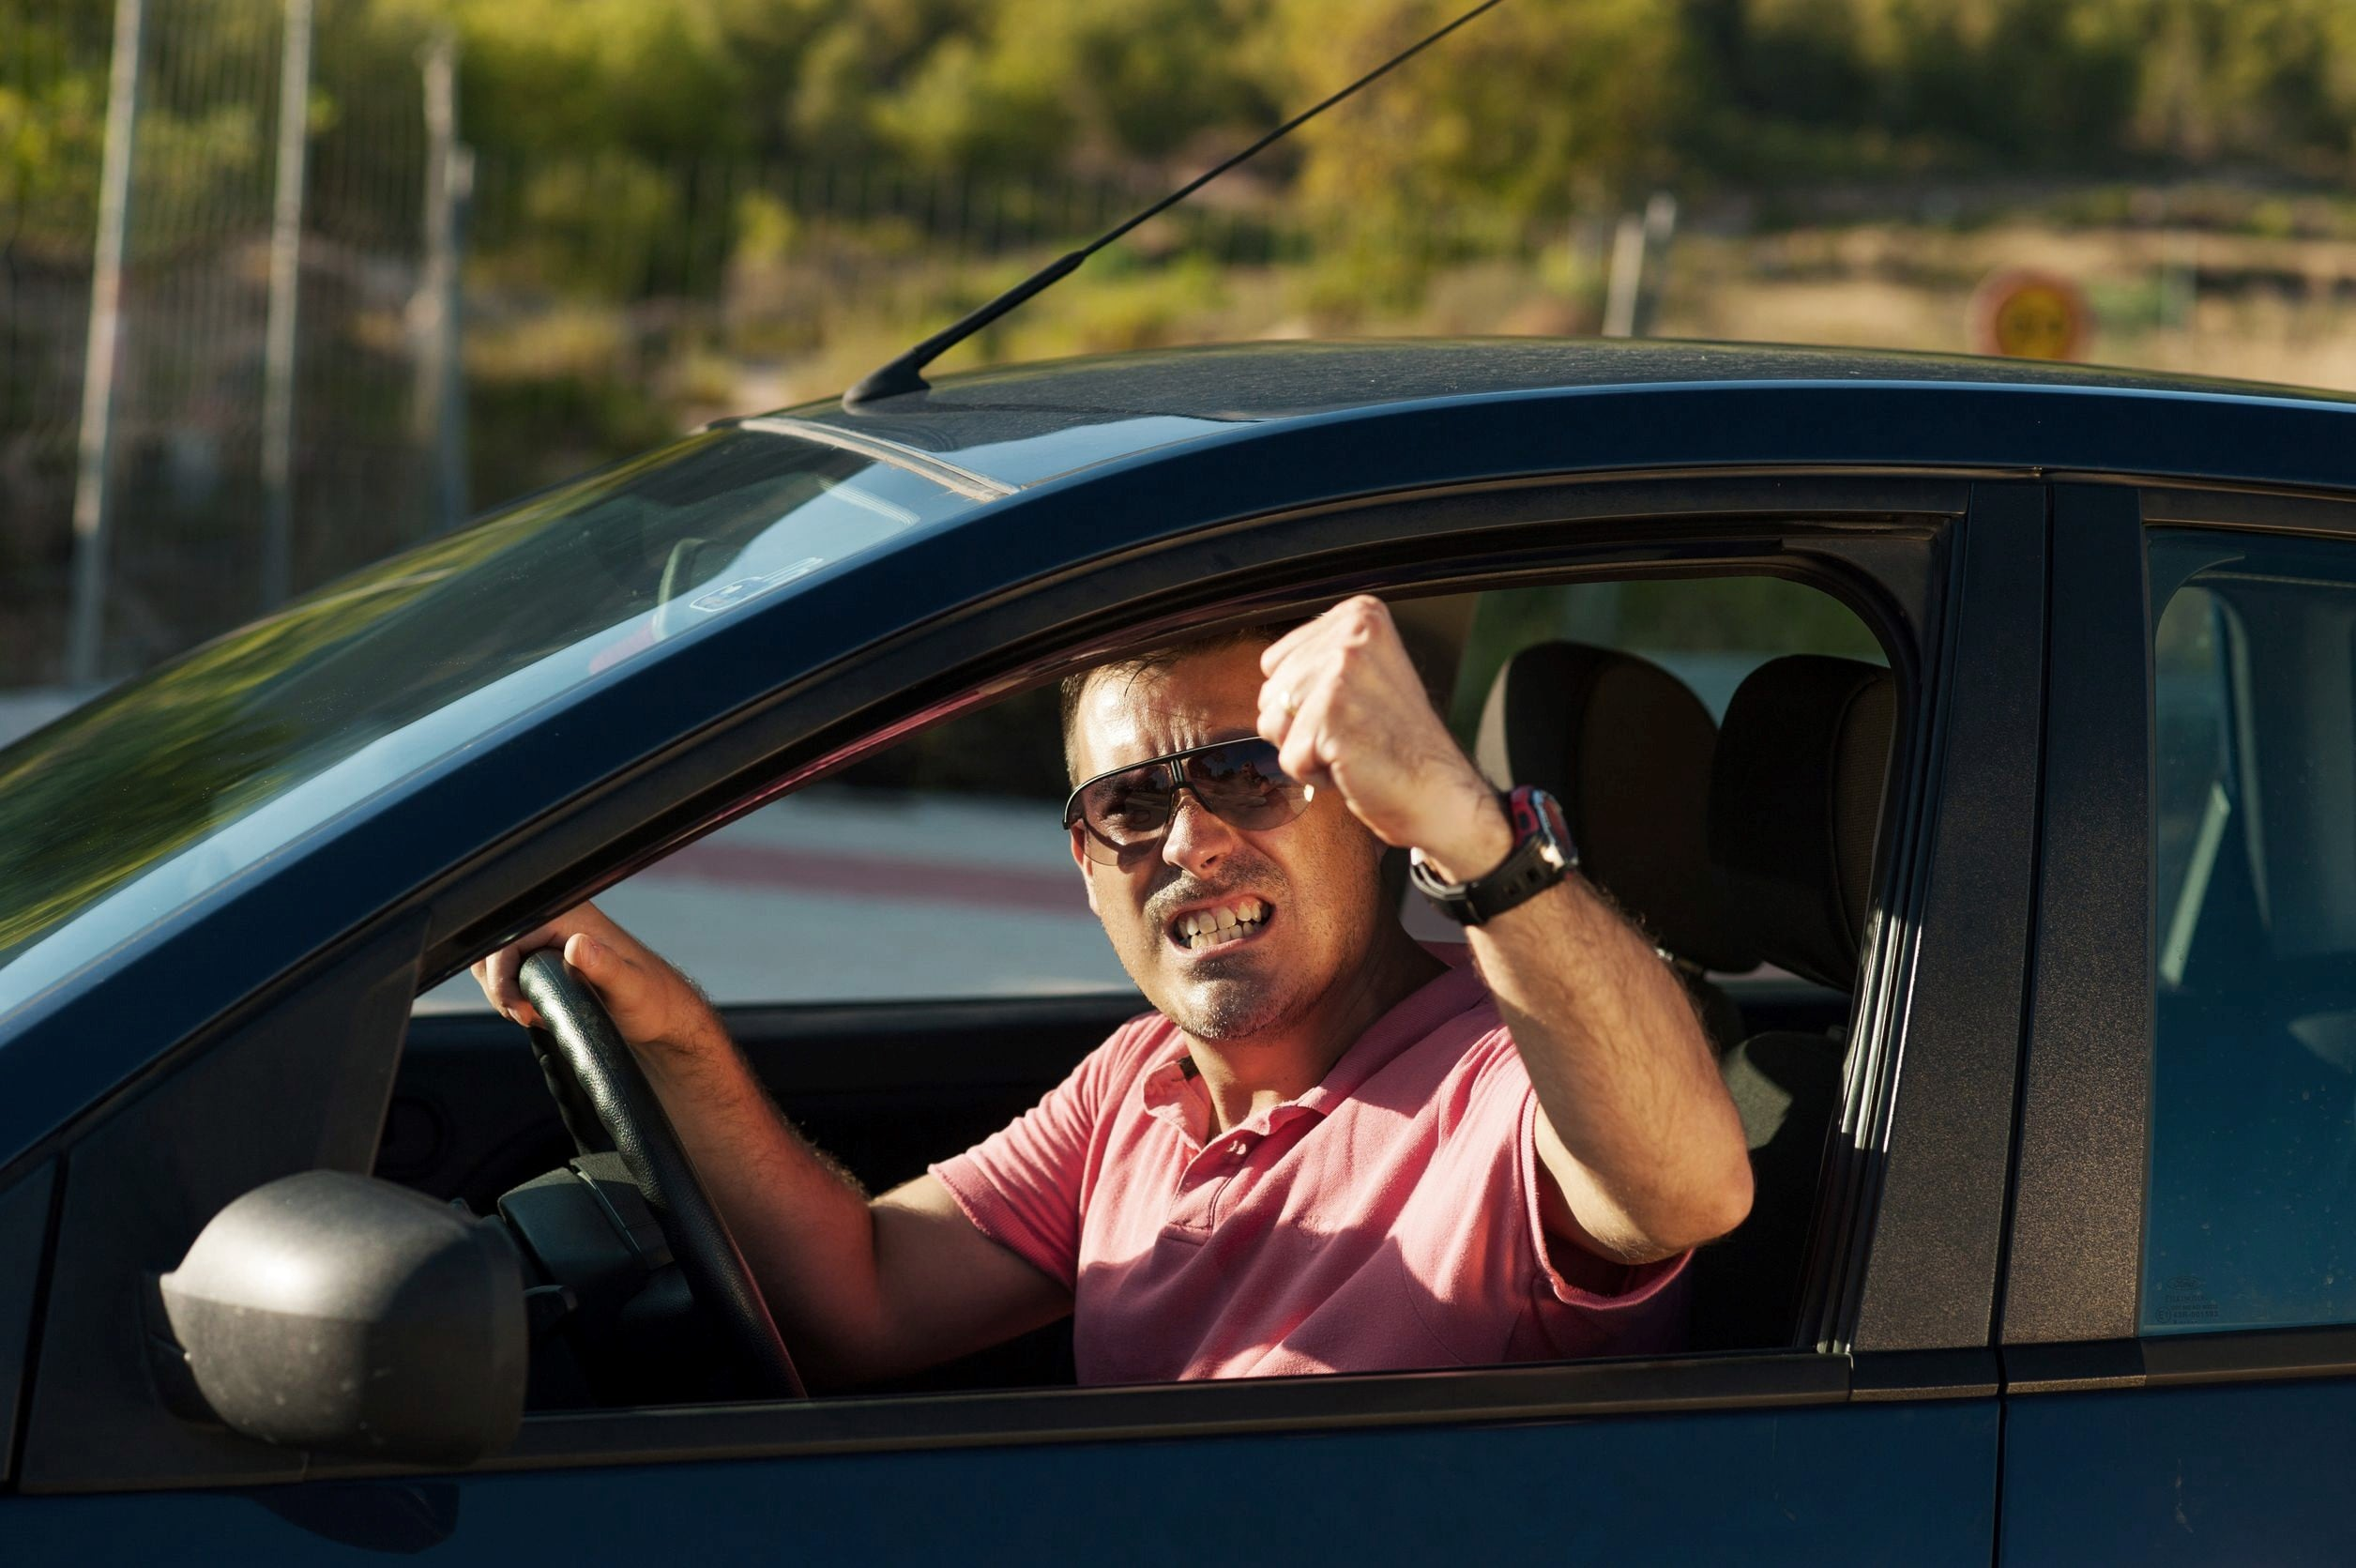 80% of Drivers Get Road Rage – What If It Causes an Accident?